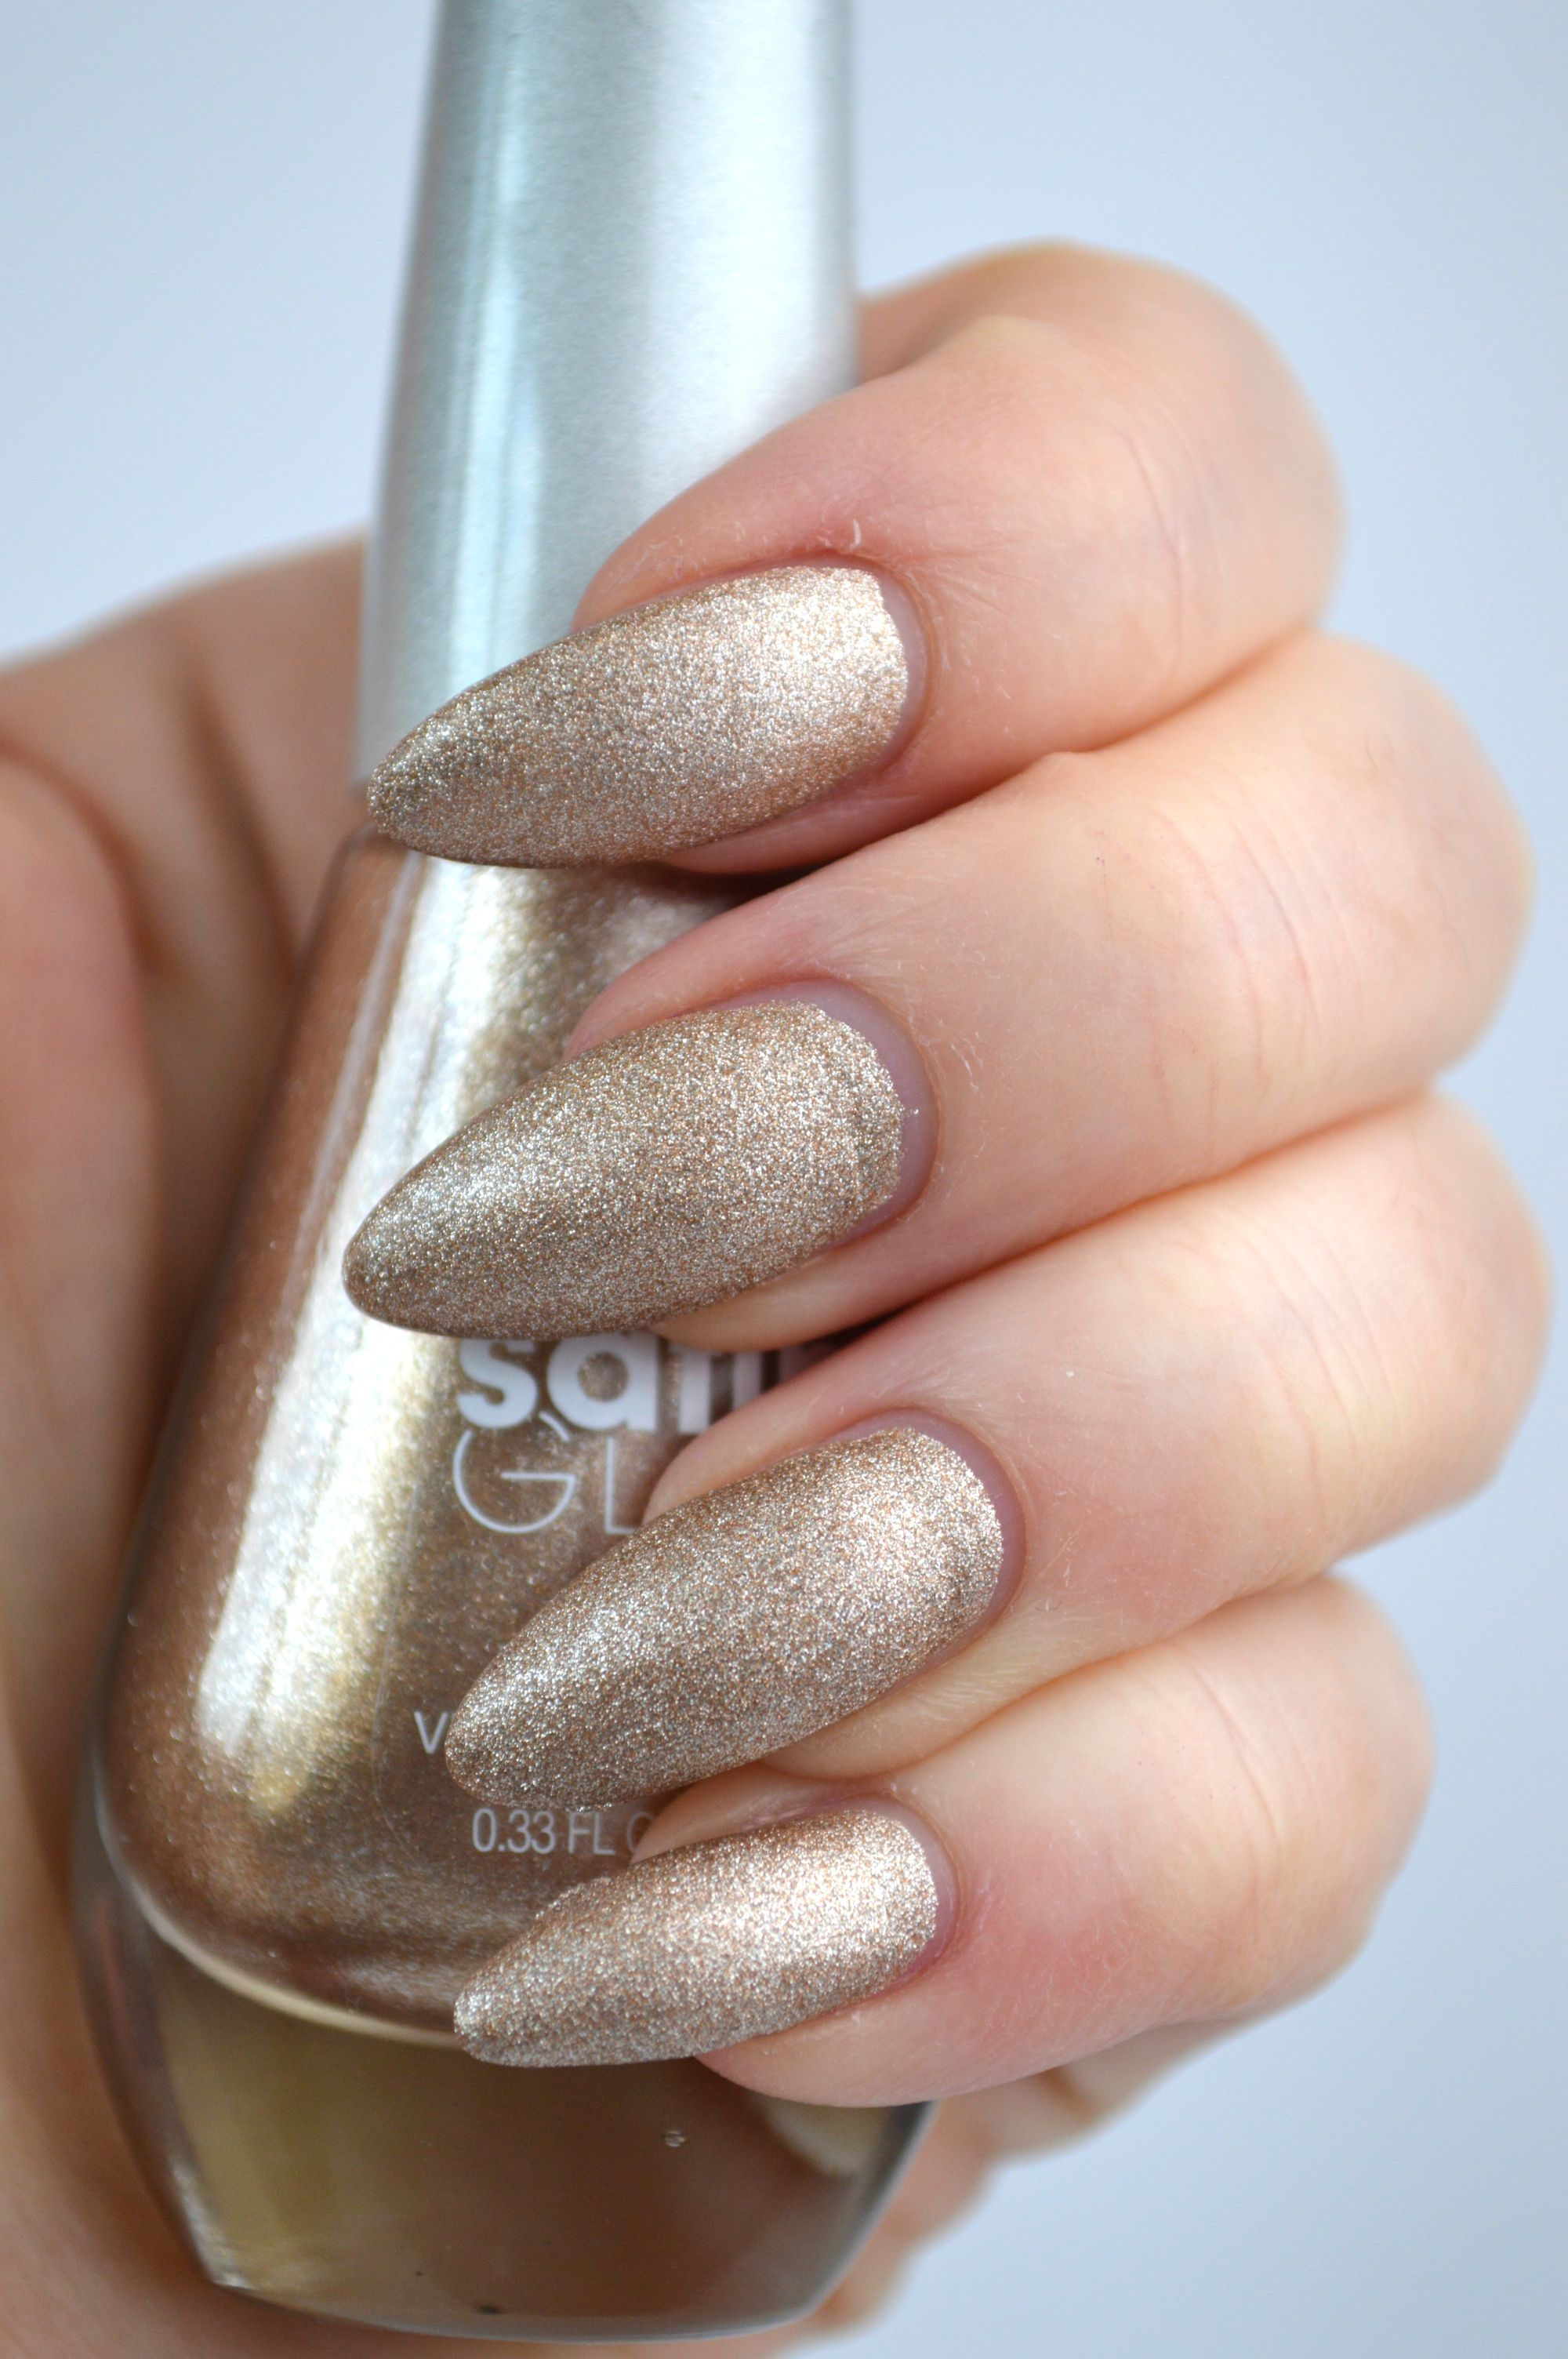 Sally_Hansen_Satin_Glam_Go_Gold_Review